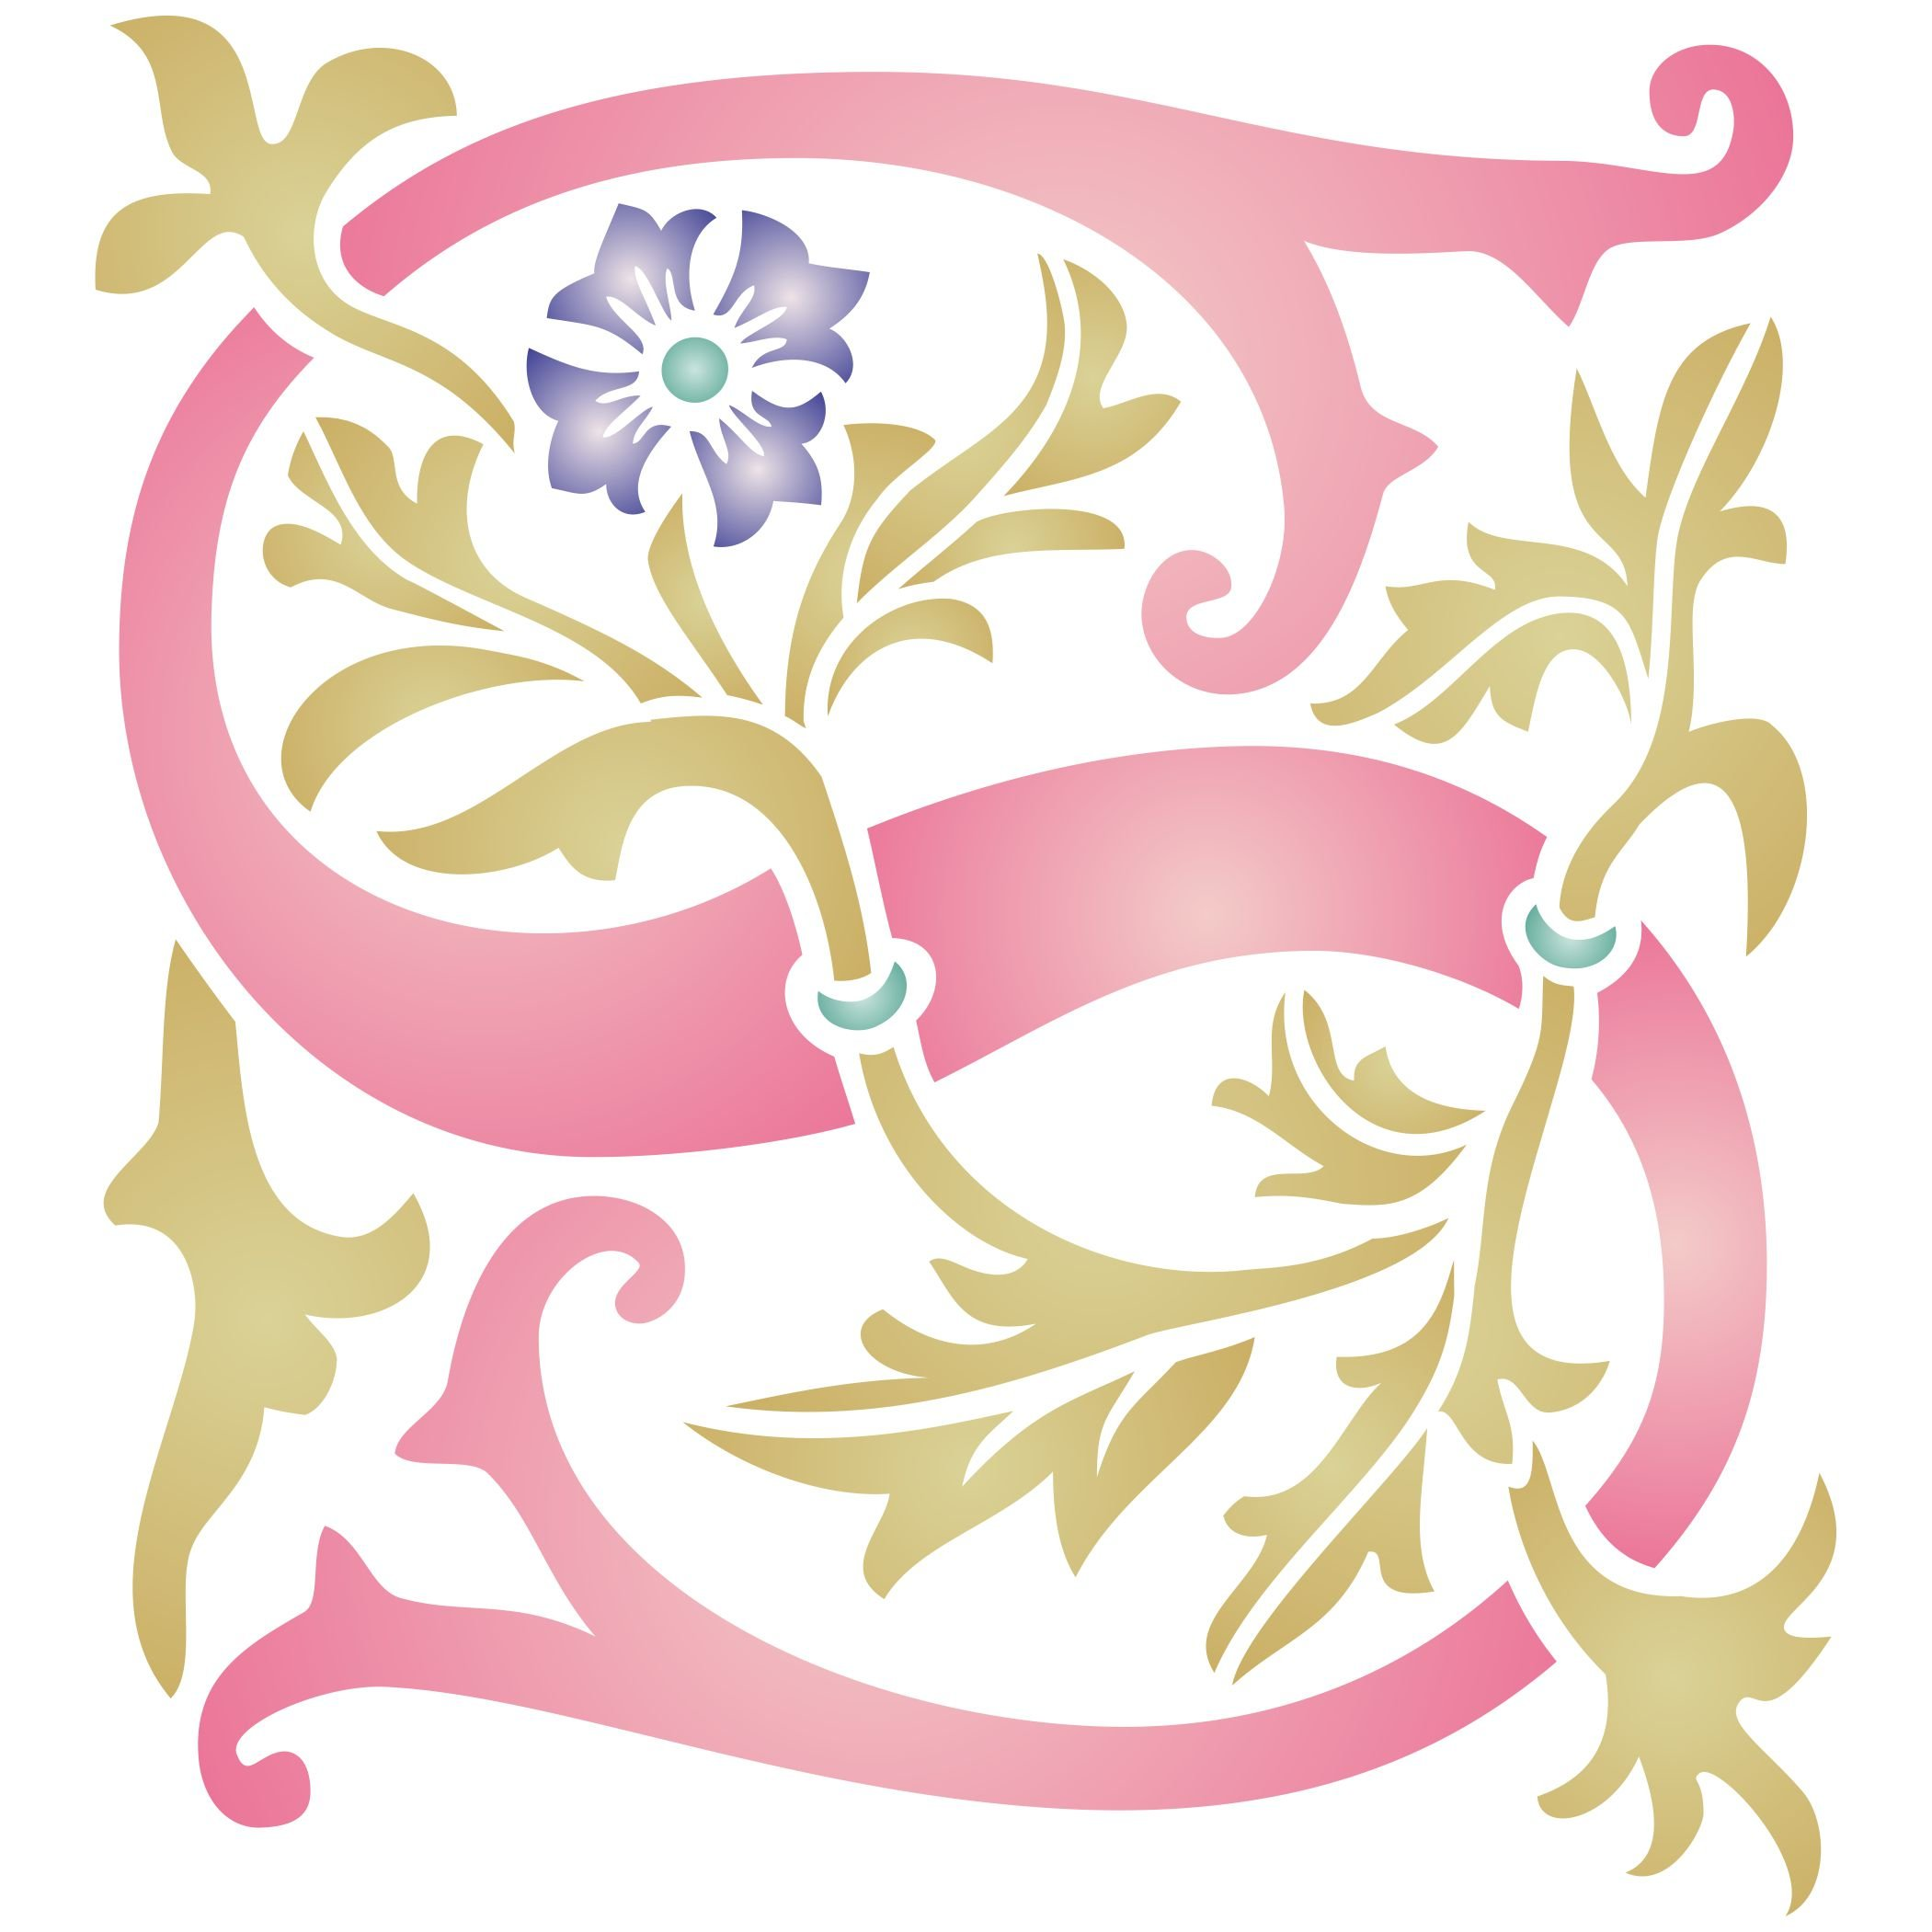 """Monogram S Stencil (size 6.5""""w x 7""""h) Reusable Stencils for Painting - Best Quality Letter Wall Art Décor Ideas - Use on Walls, Floors, Fabrics, Glass, Wood, Cards, and More…"""